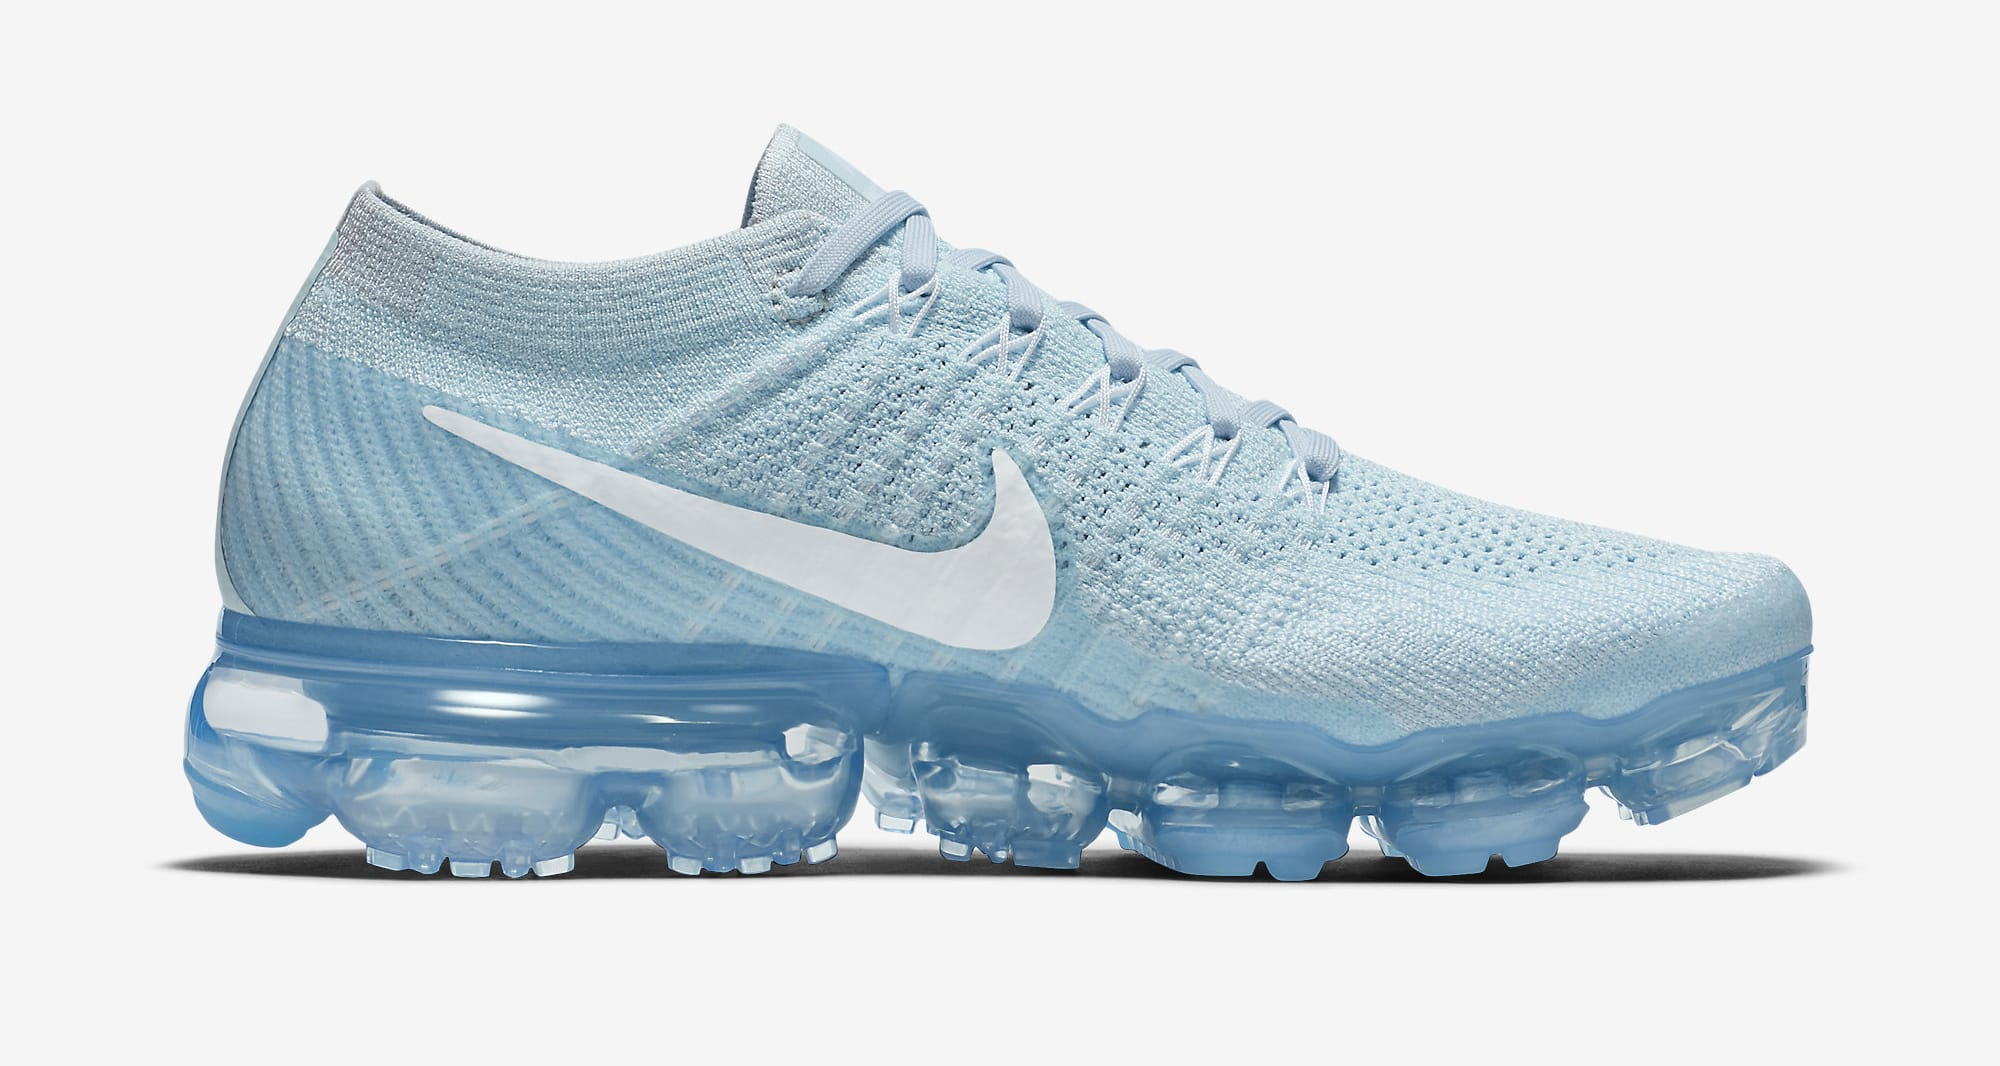 Cheap Nike Sportswear Air Vapormax Nitty Gritty Store,Cheap Nike Air Vapormax